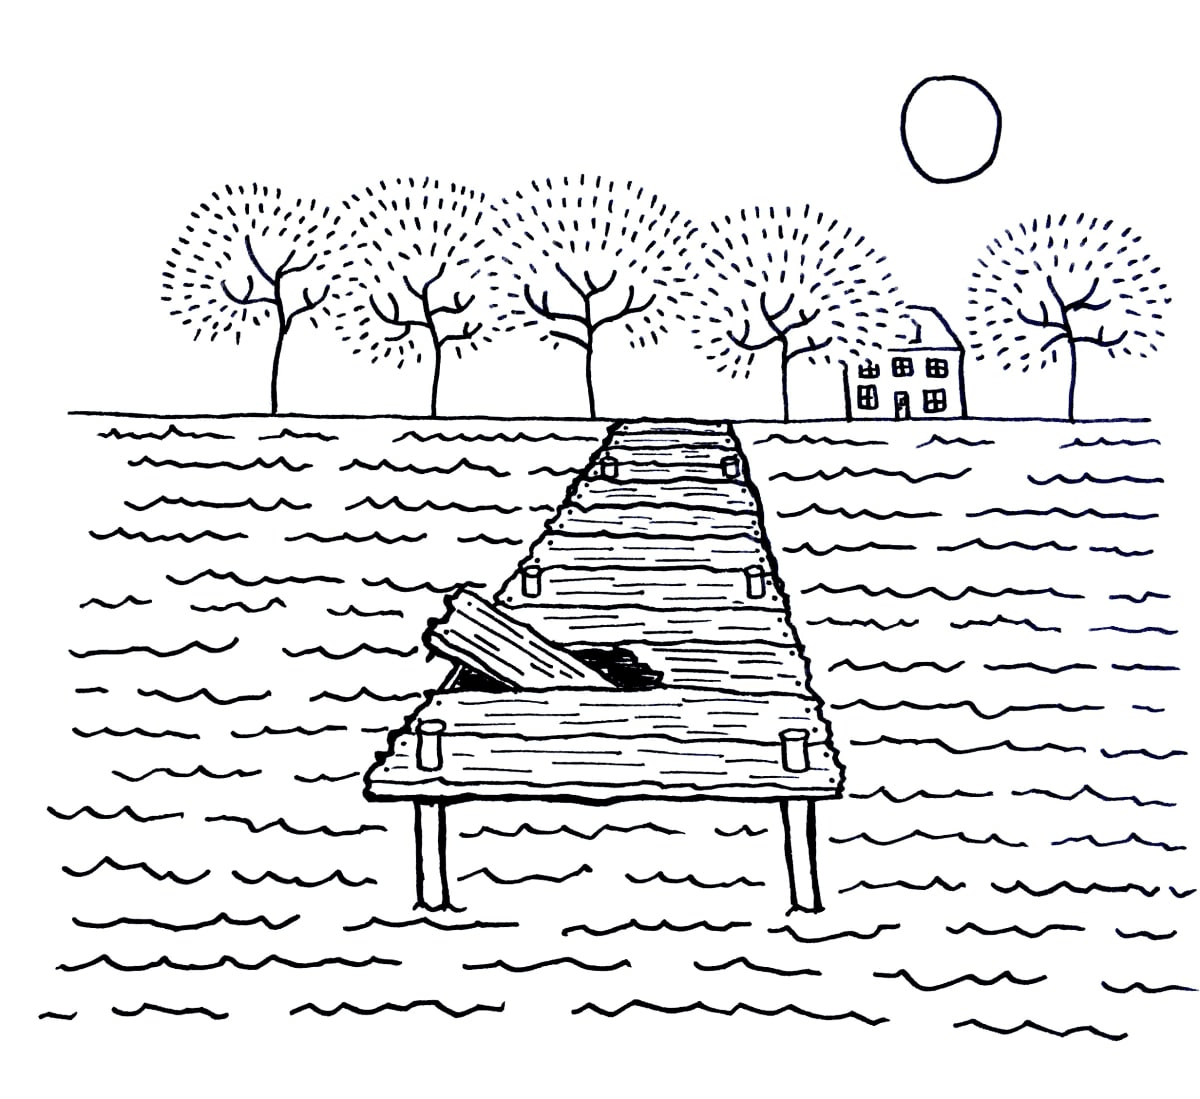 An illustration of a wooden dock with a broken board